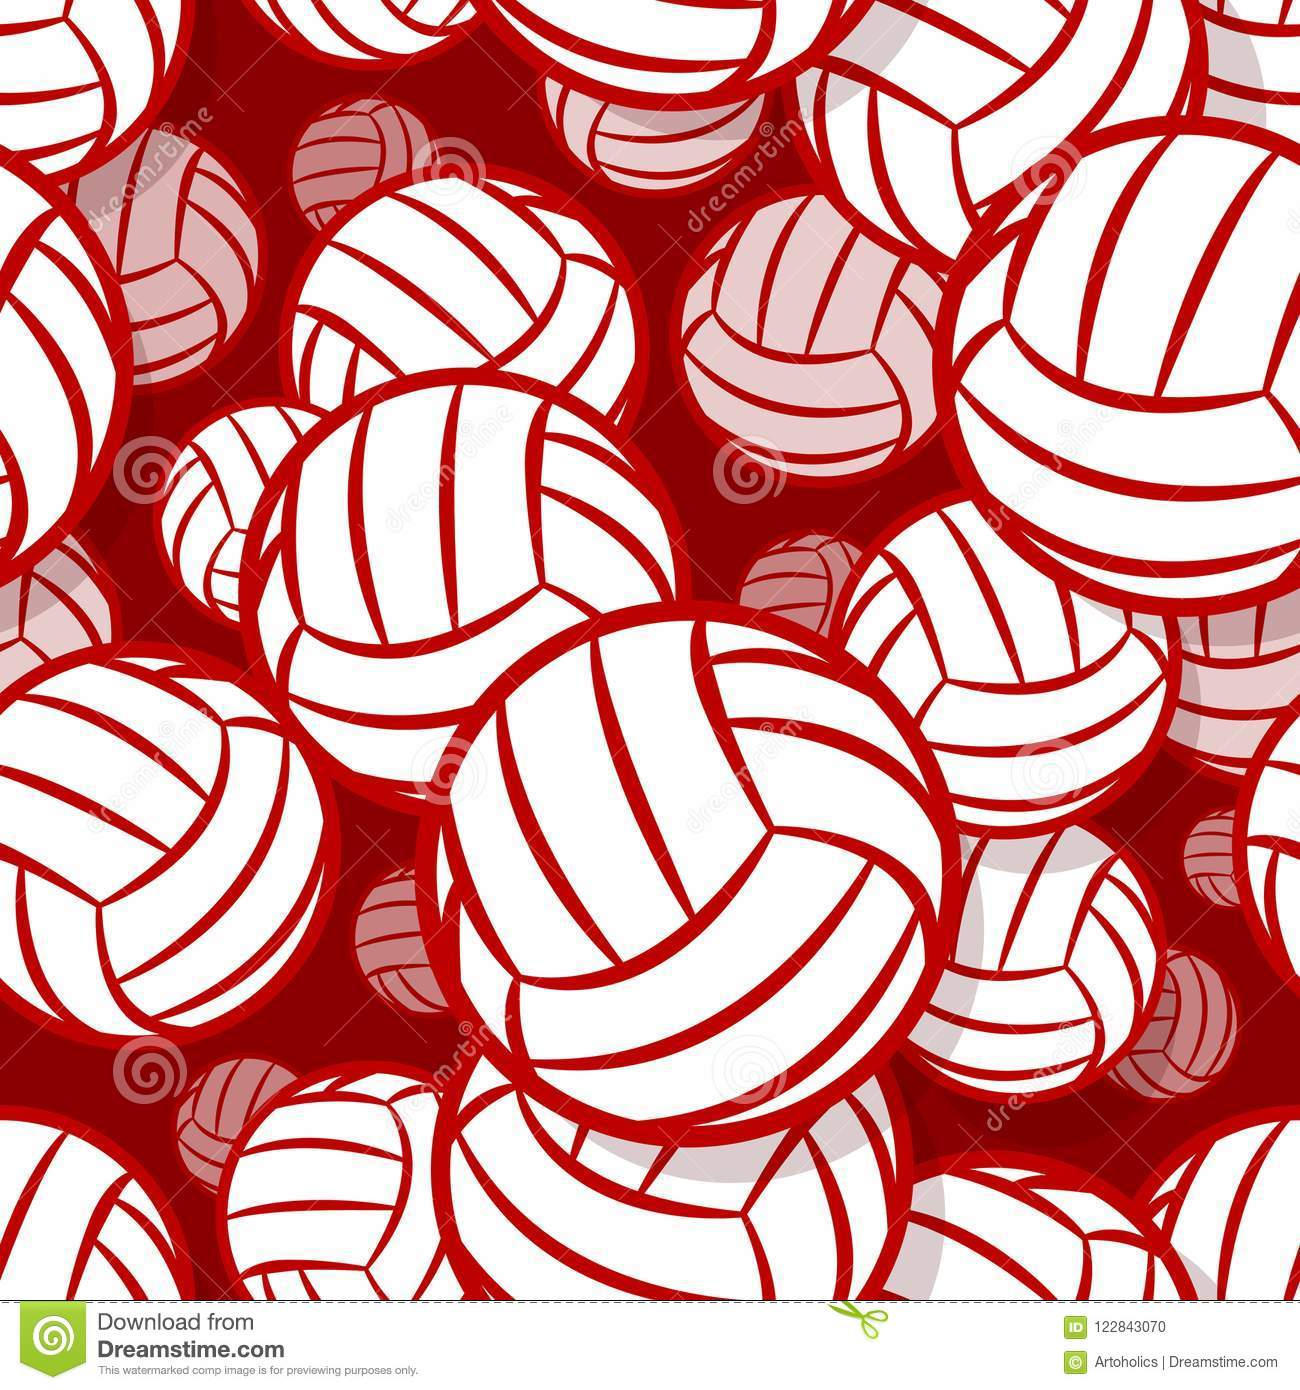 picture about Volleyball Printable identified as Seamless Practice With Volleyball Ball Image. Inventory Vector